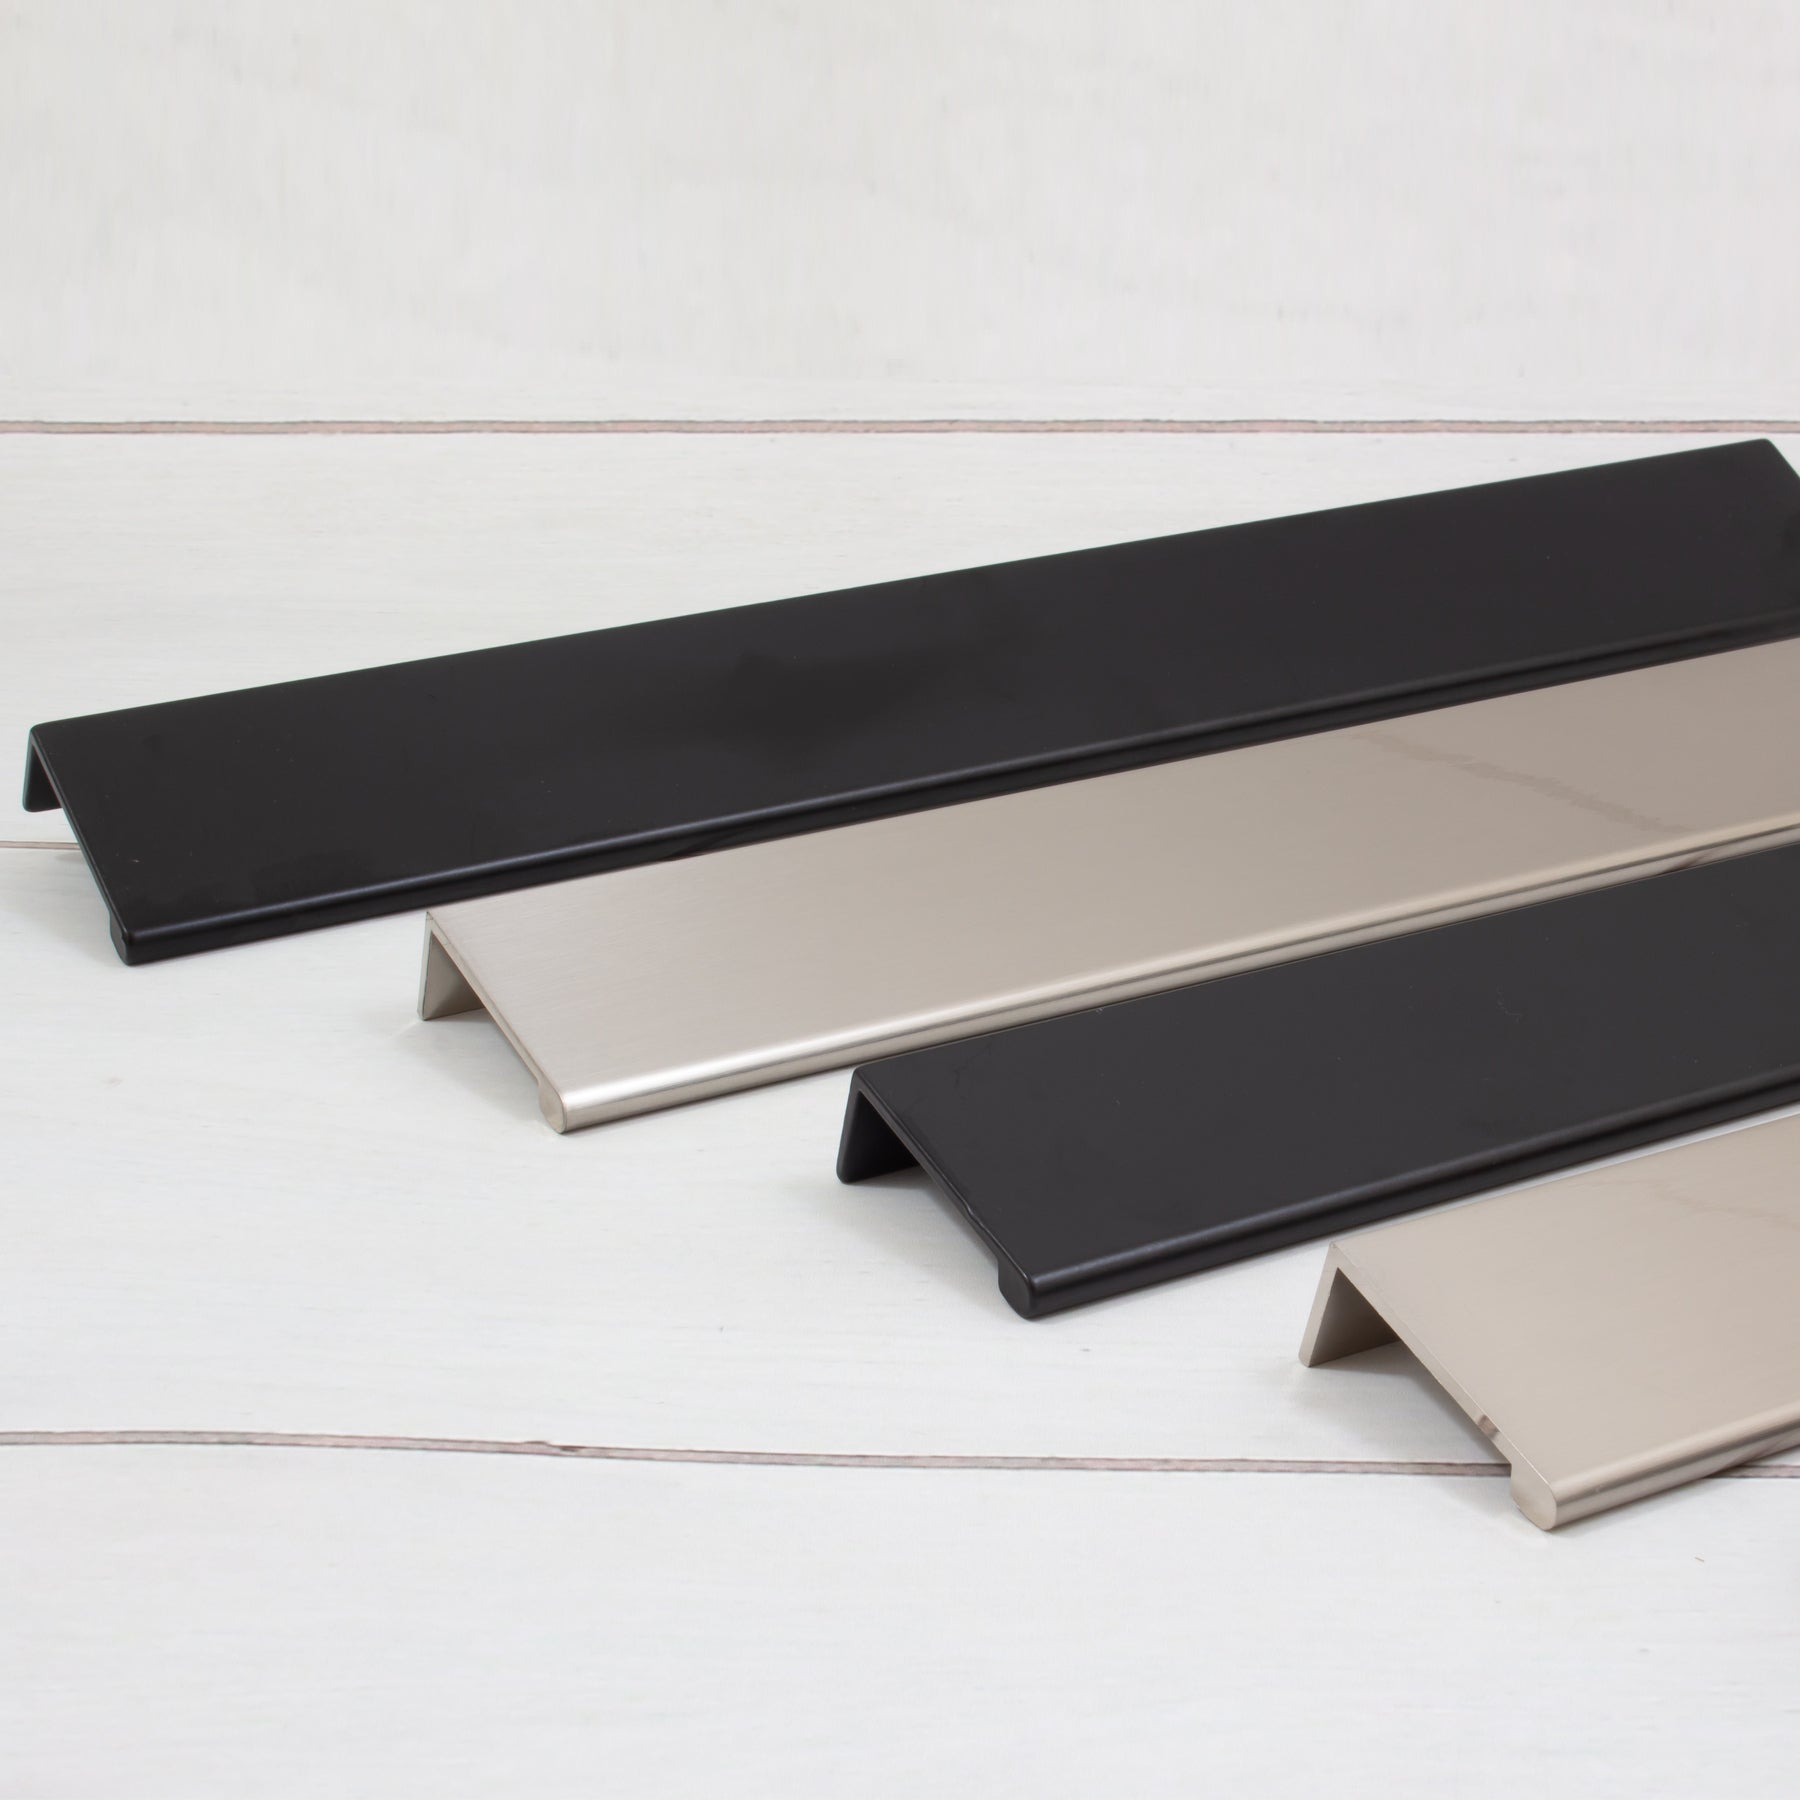 Add a Modern Look with our Cabinet Edge Pulls!